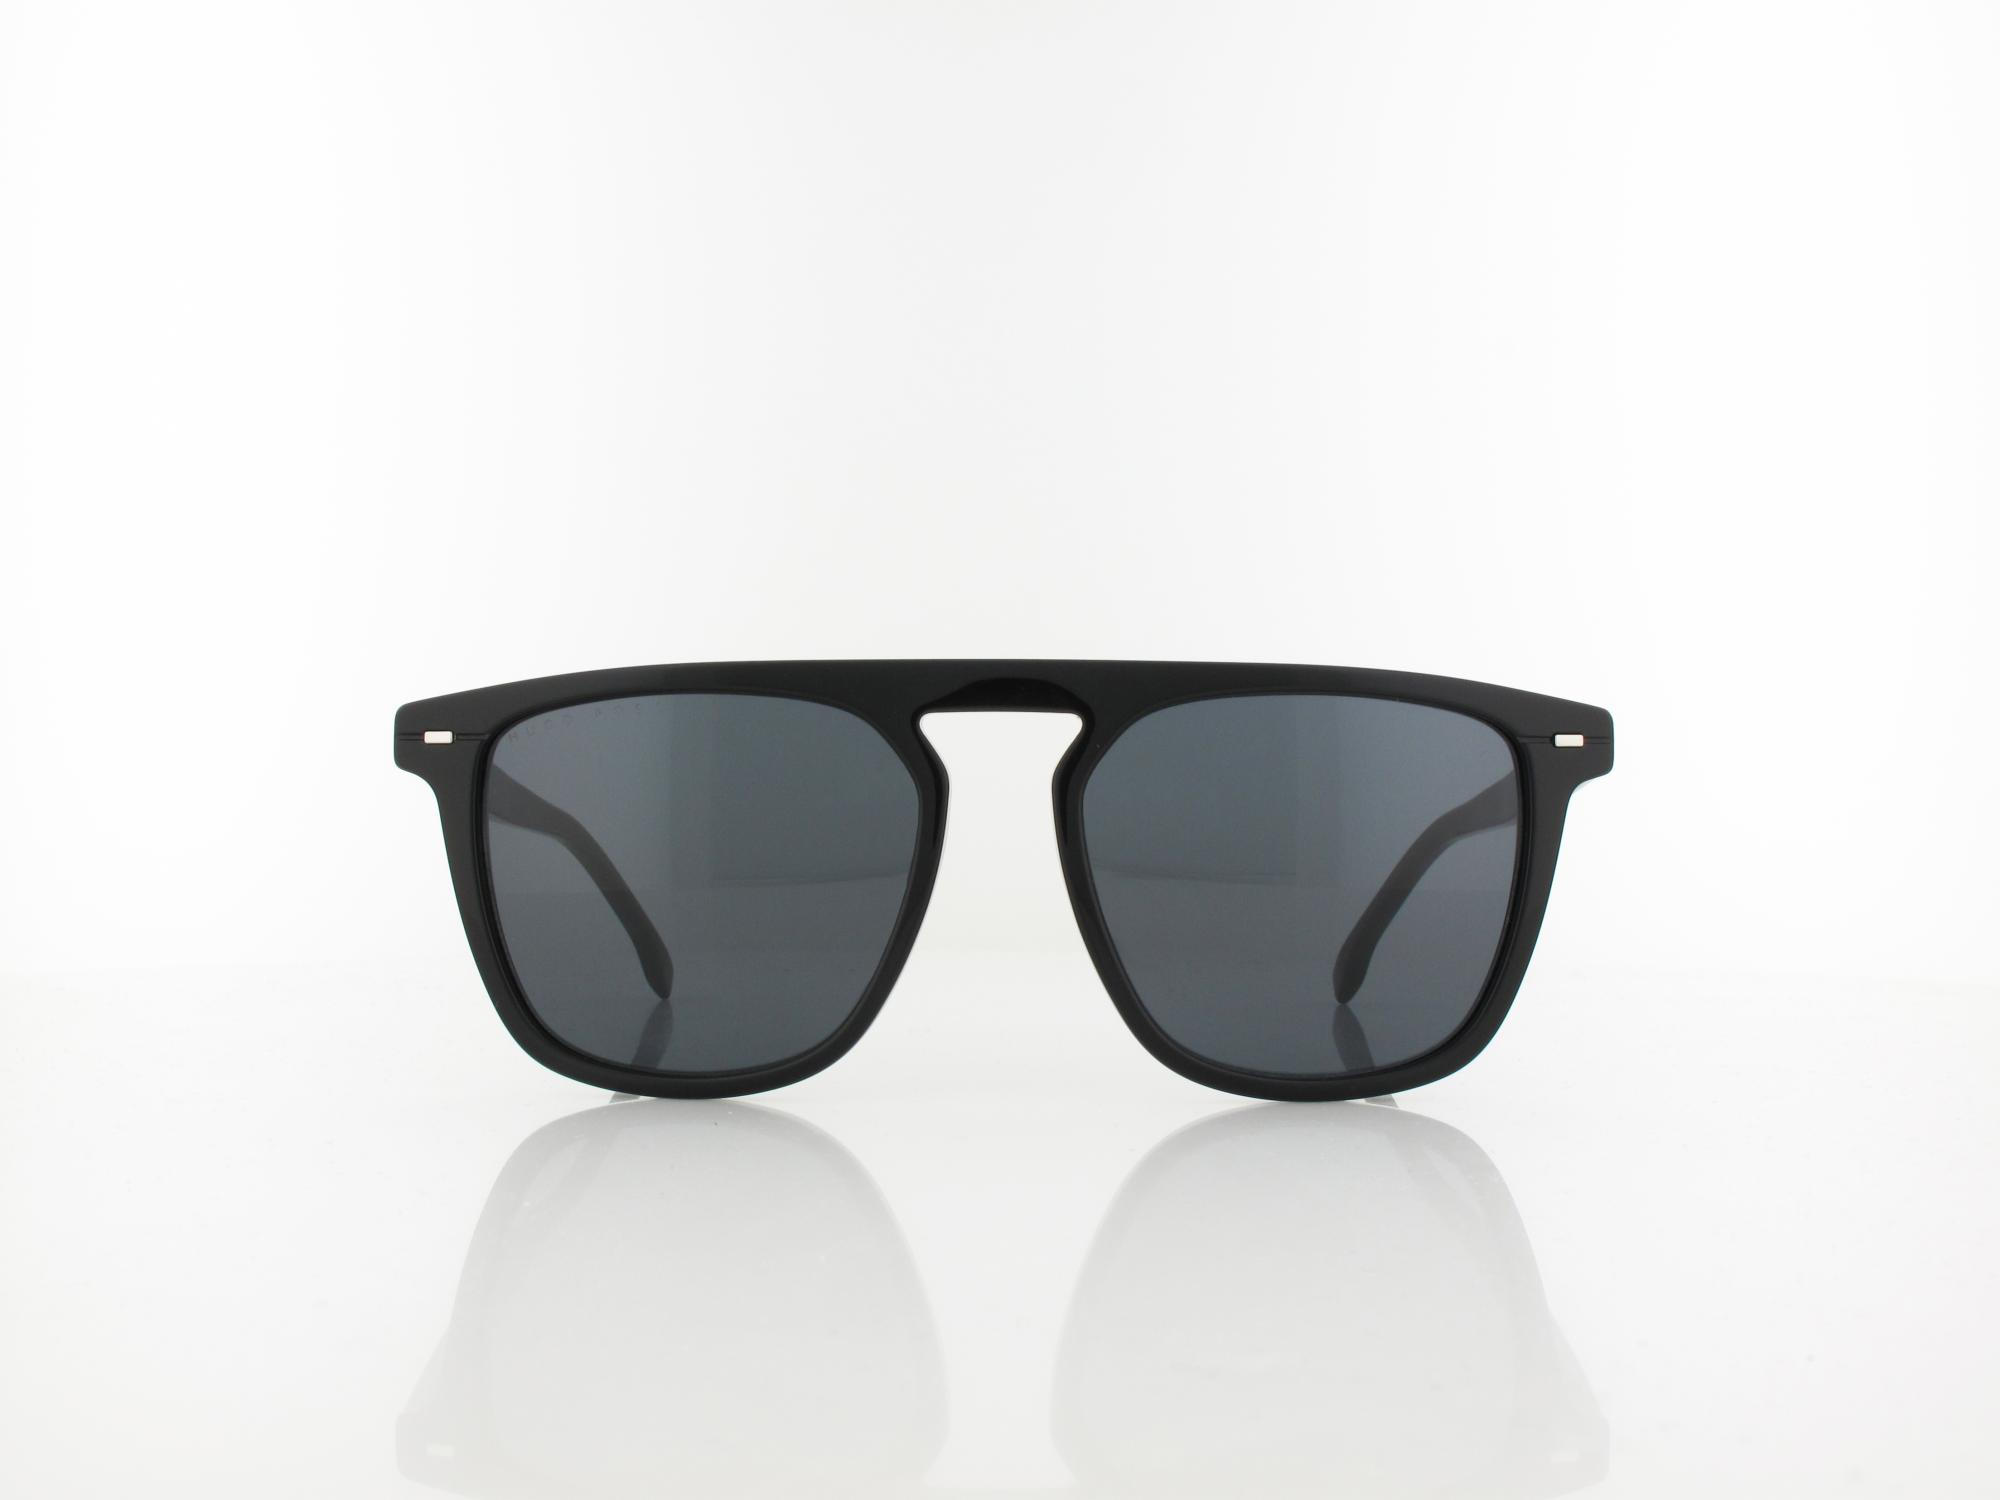 Boss | Boss 1127/S 807/IR 54 | black / grey